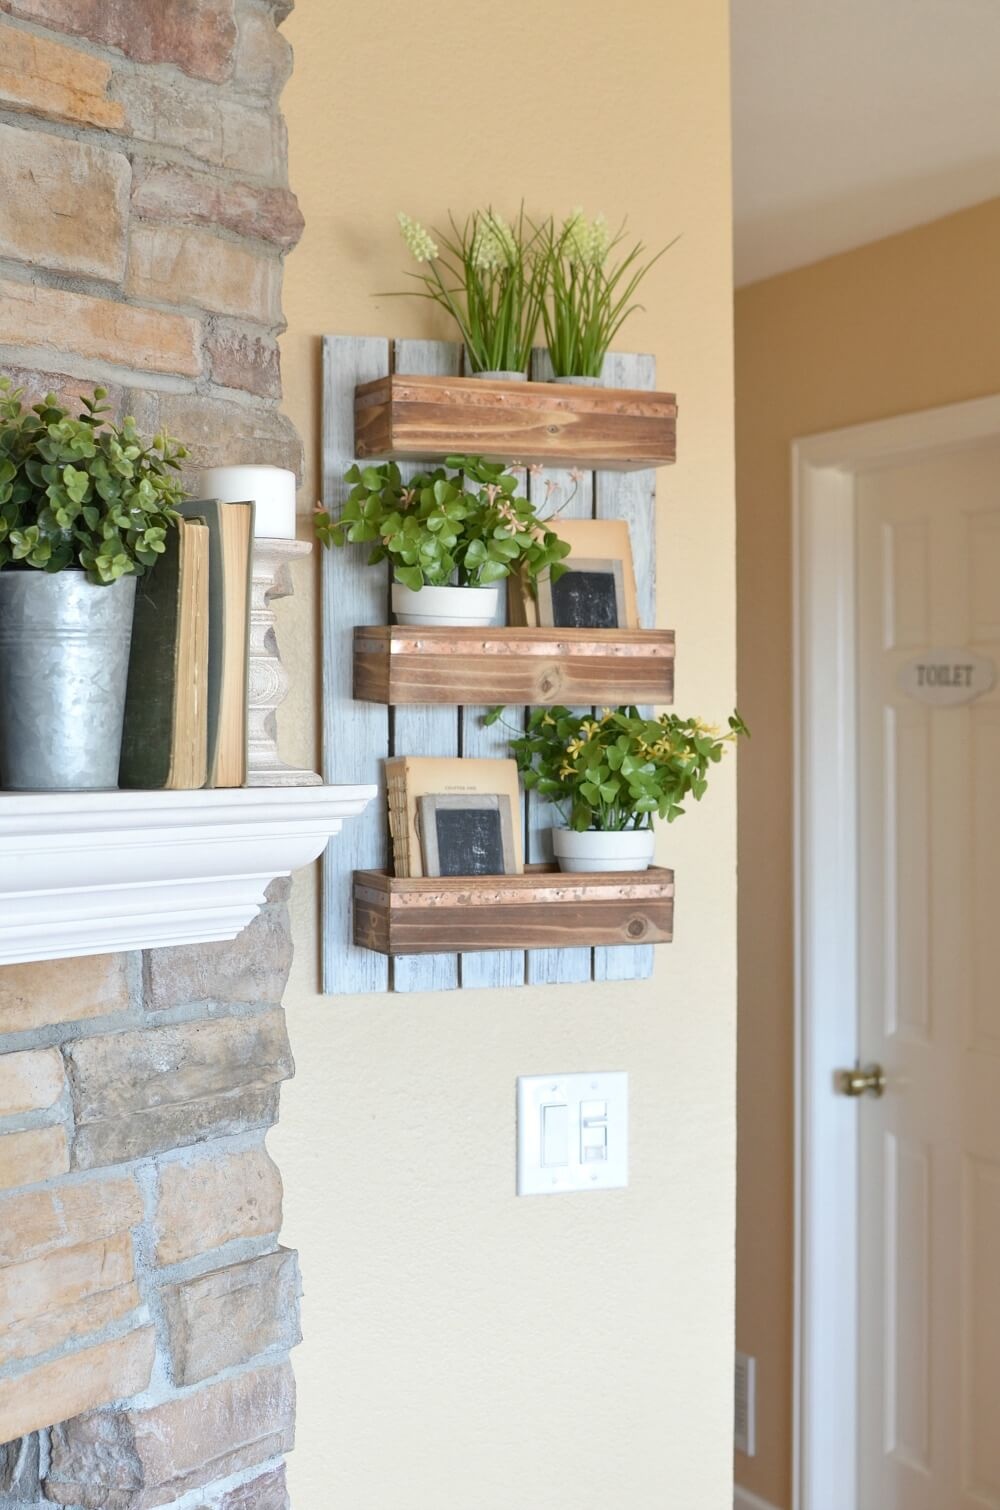 Horrible Designs Fireplace 2018 Living Room Ideas Pinterest Living Room Ideas Wooden Shelf Farmhouse Living Room Designs Farmhouse Living Room Decor Ideas interior Interiors Living Room Ideas